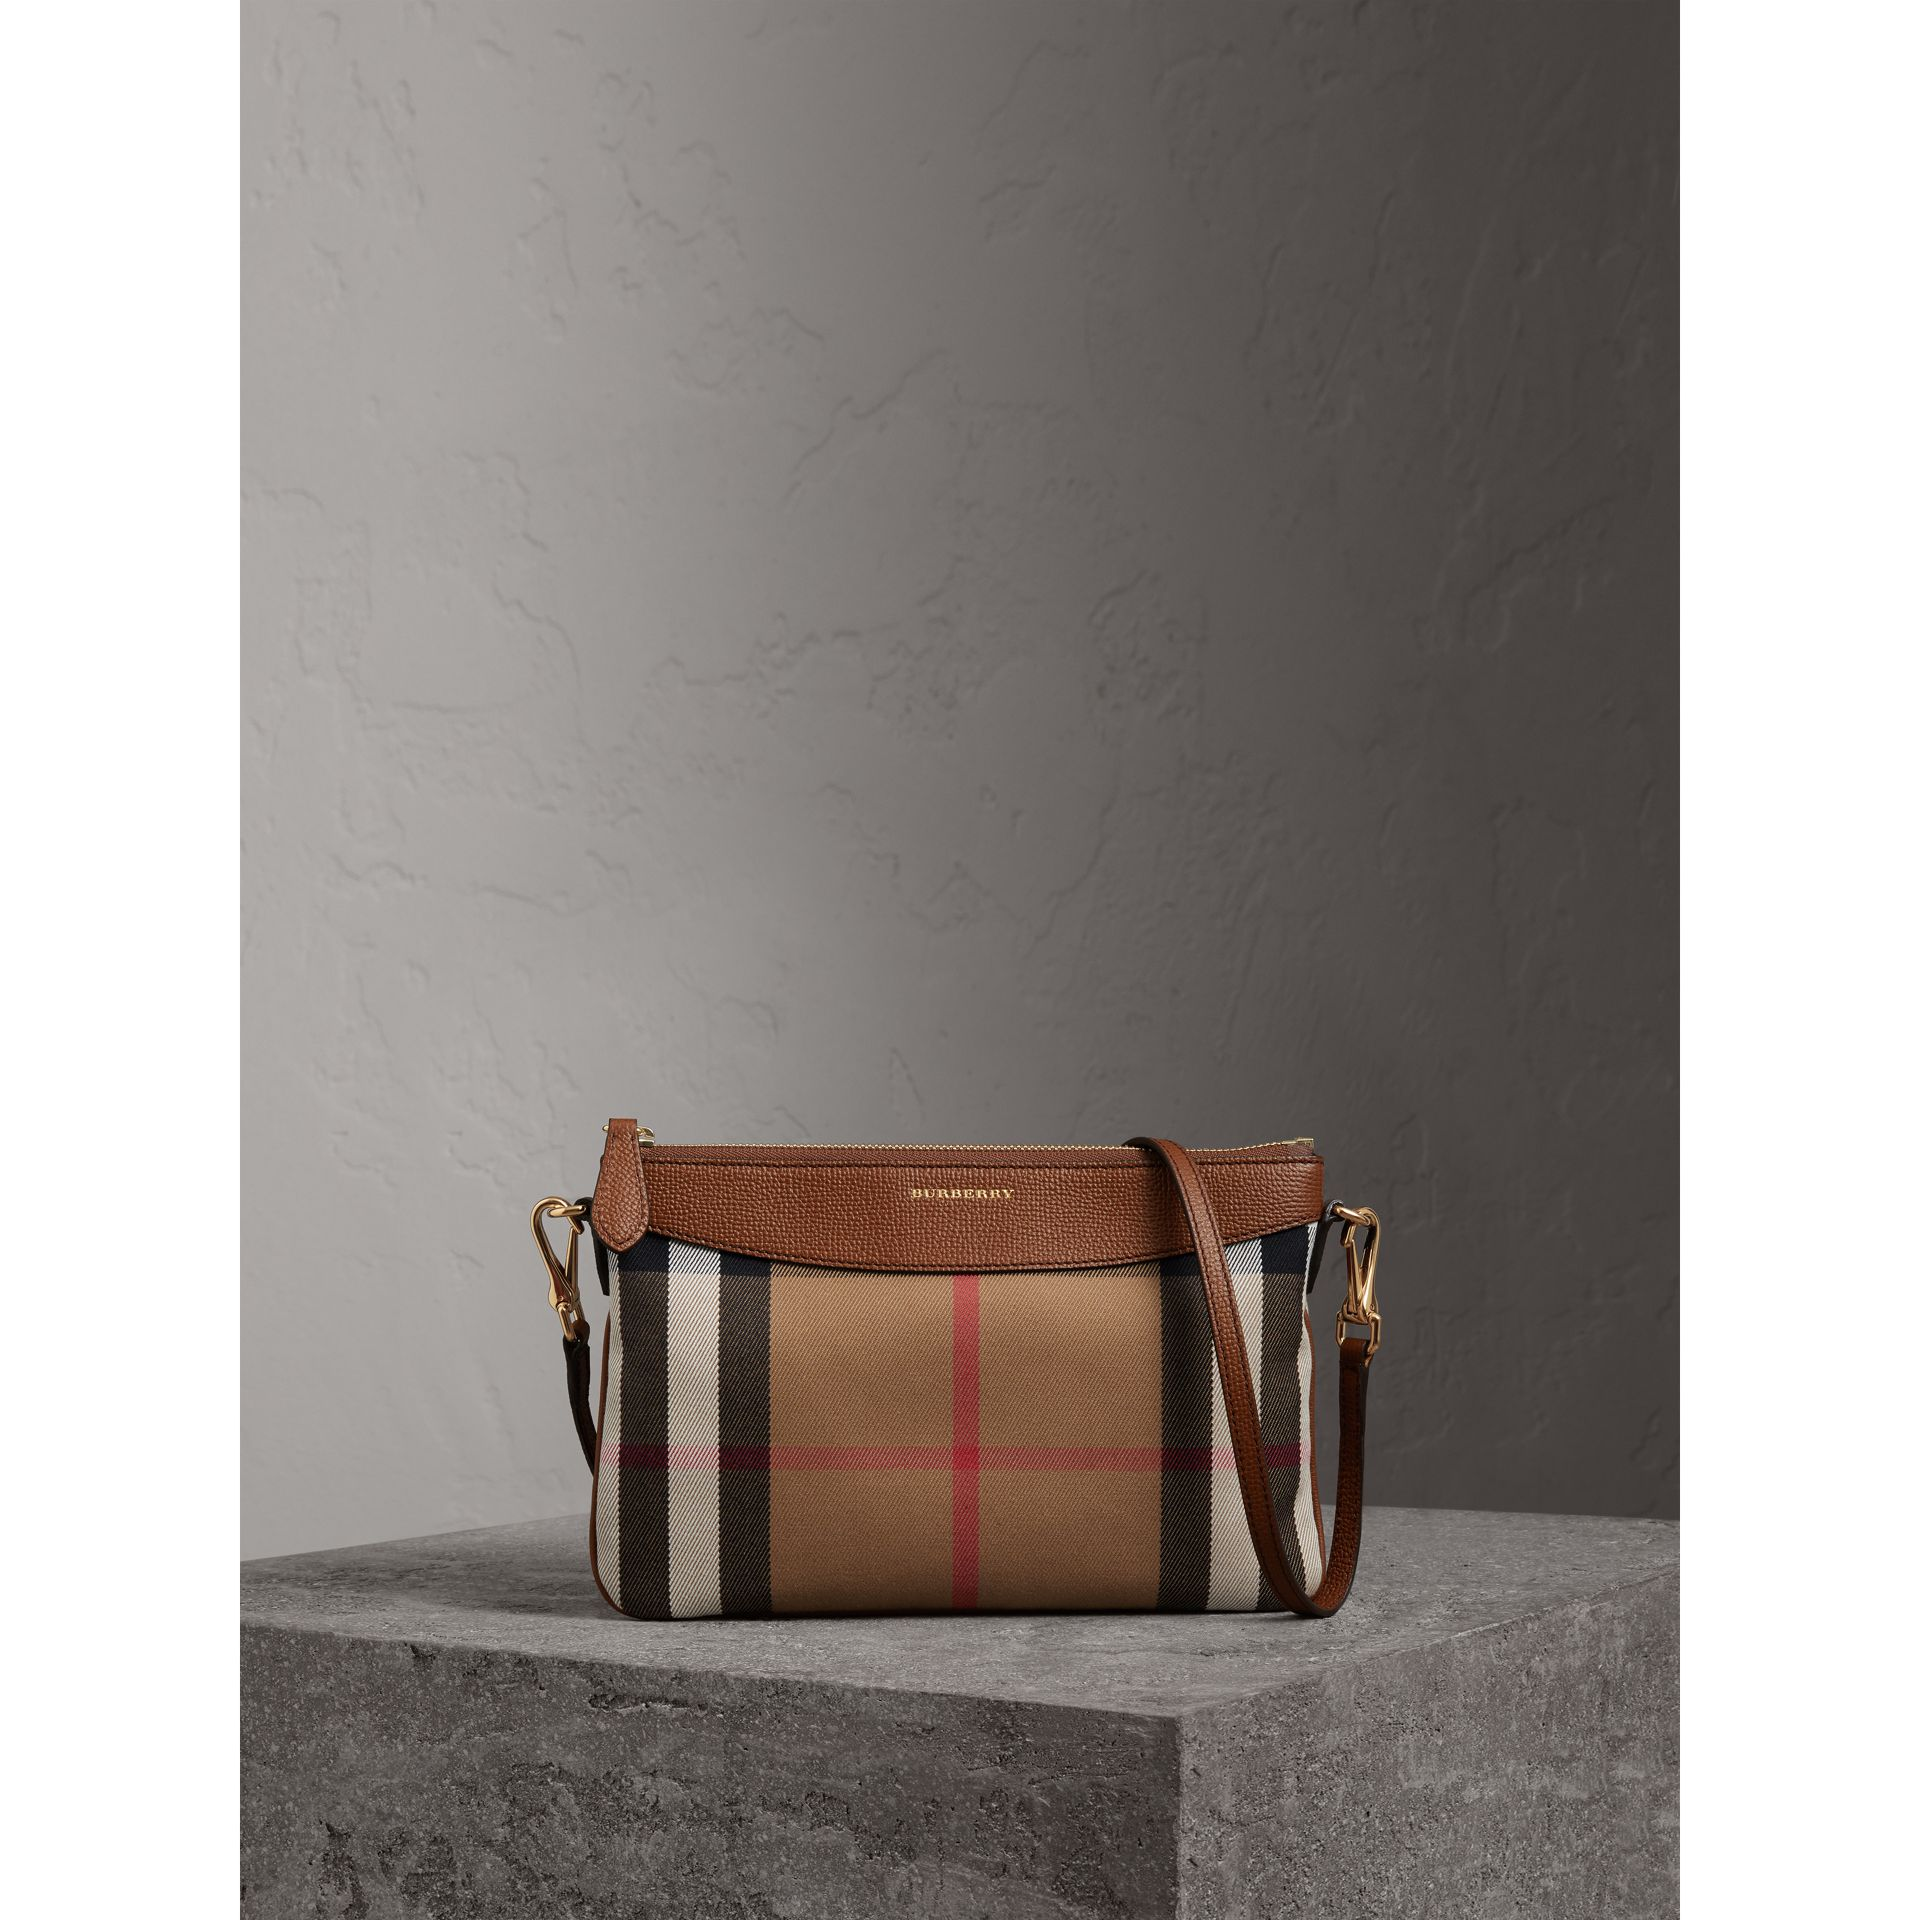 House Check and Leather Clutch Bag in Tan - Women | Burberry - gallery image 0